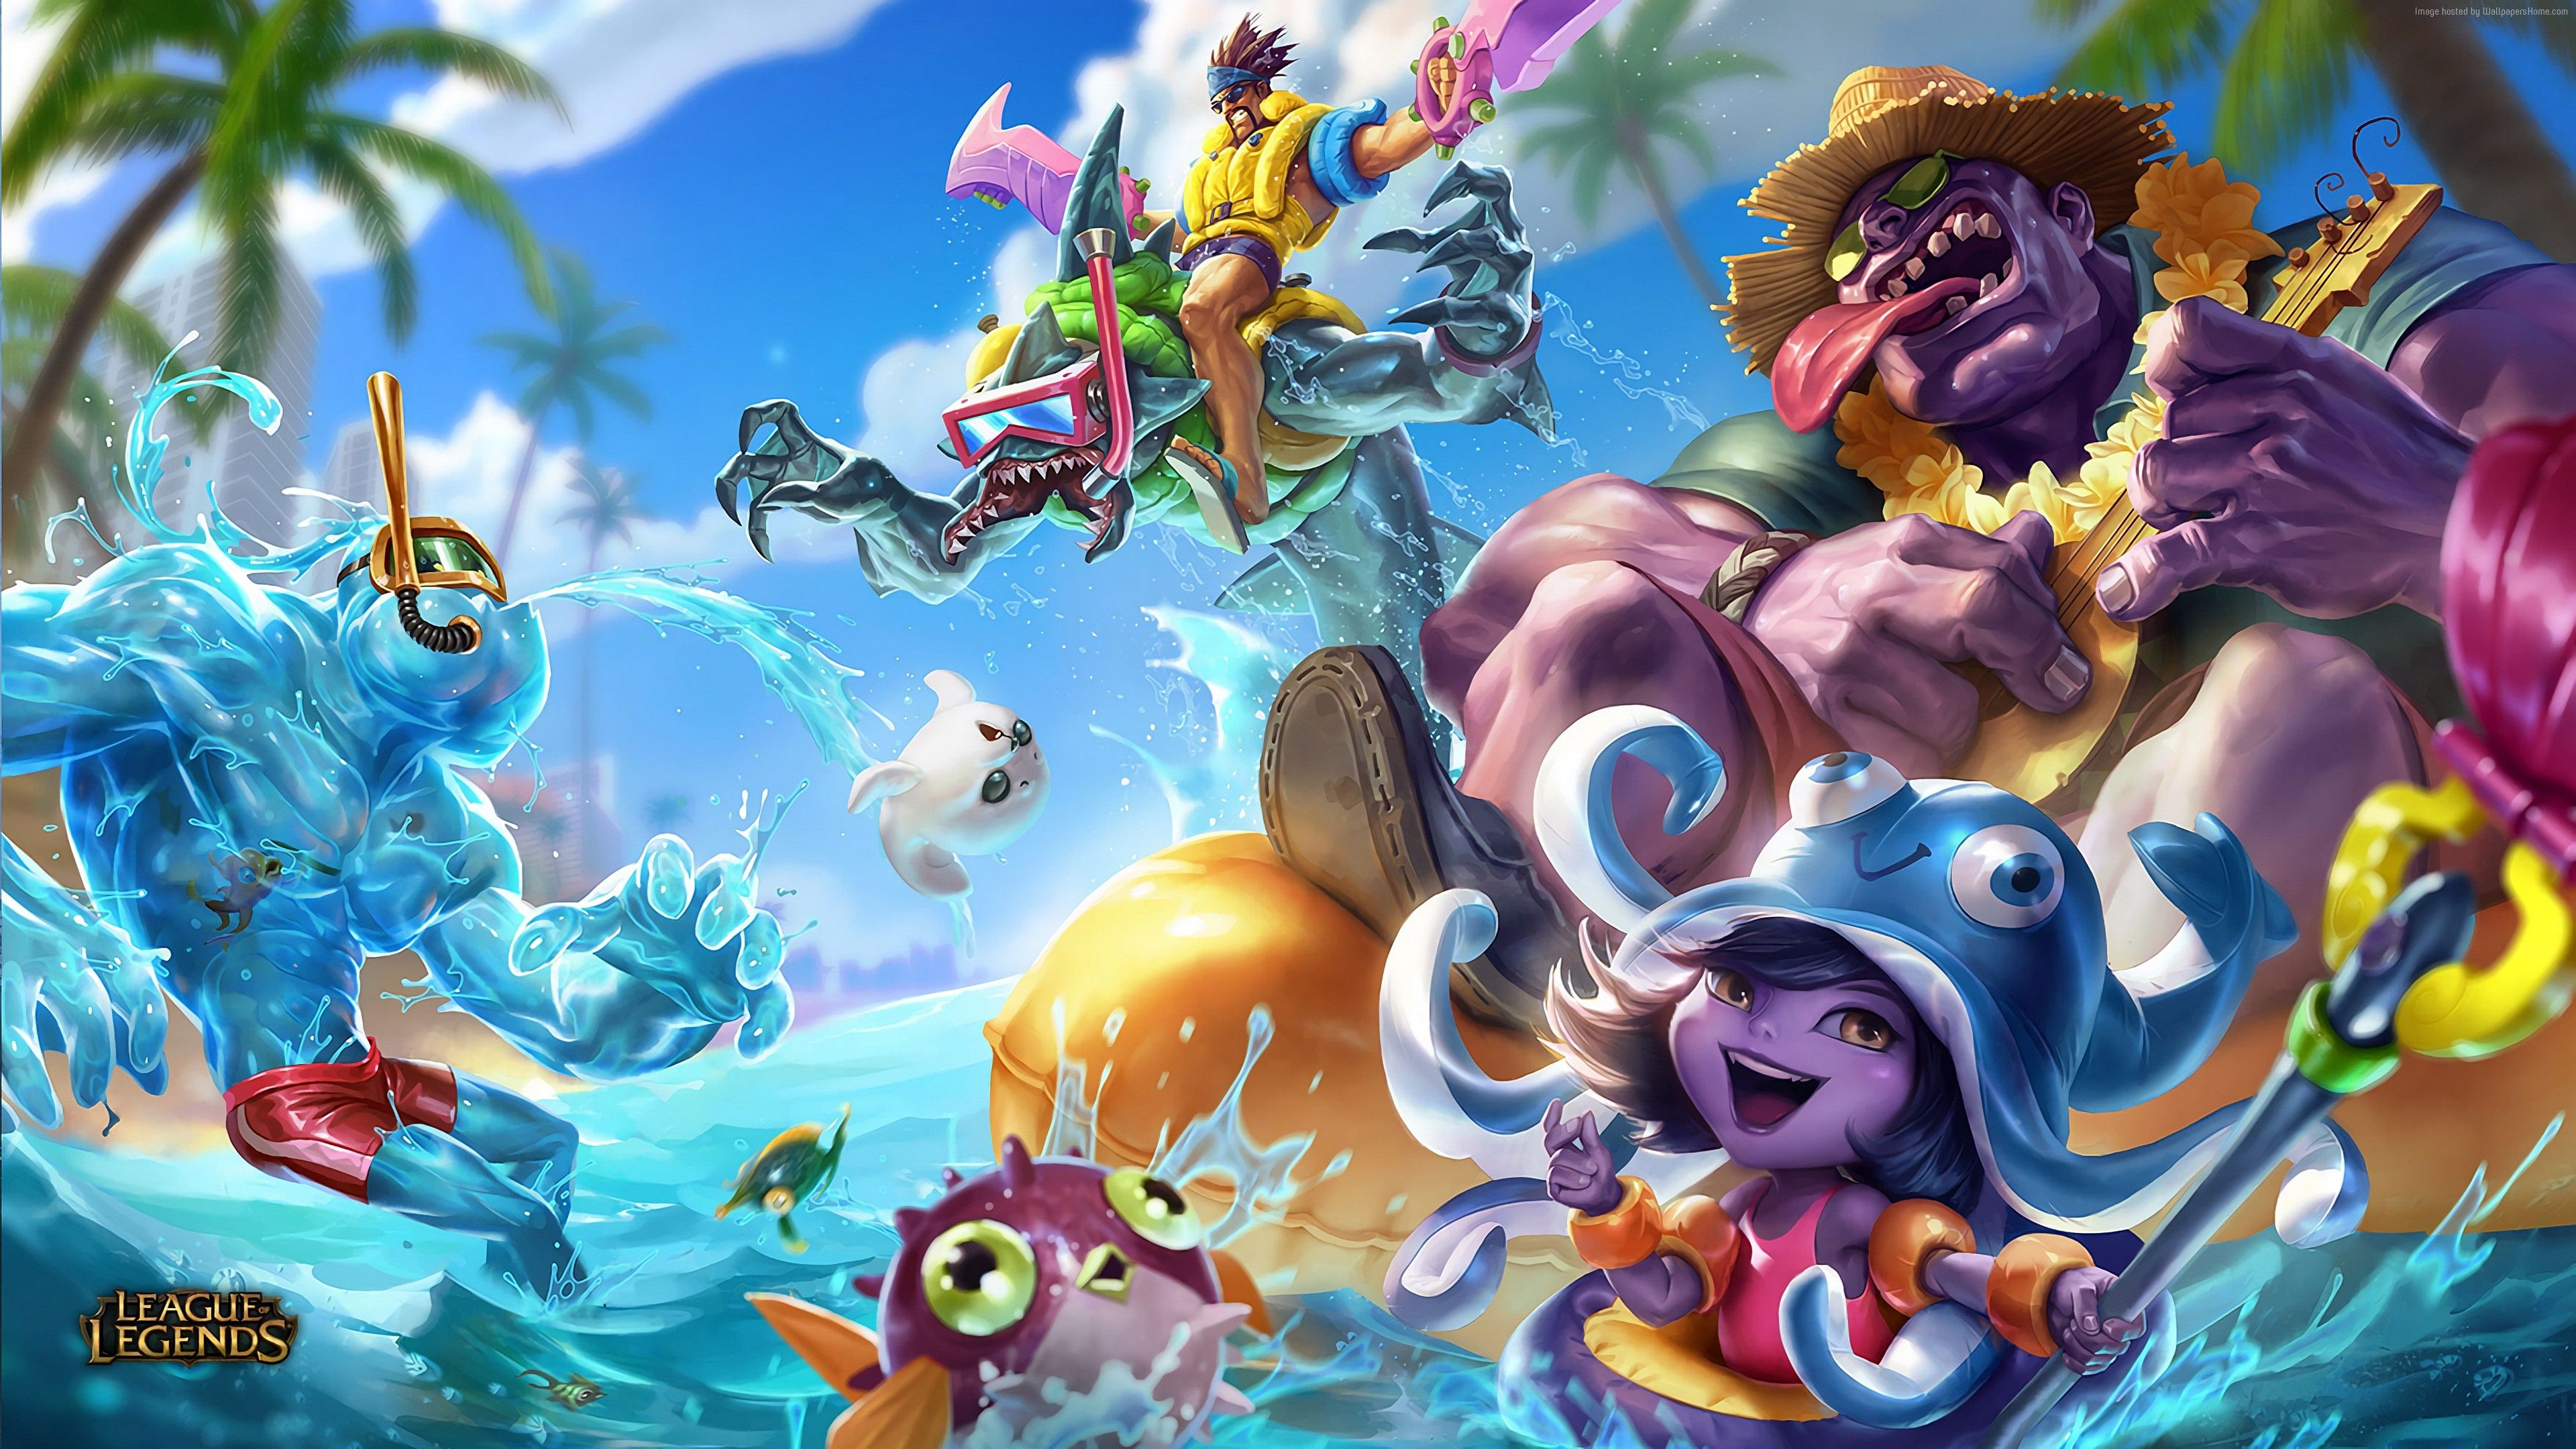 League of Legends Arcade Wallpaper 1920x1080 by AliceeMad on 1920x1080